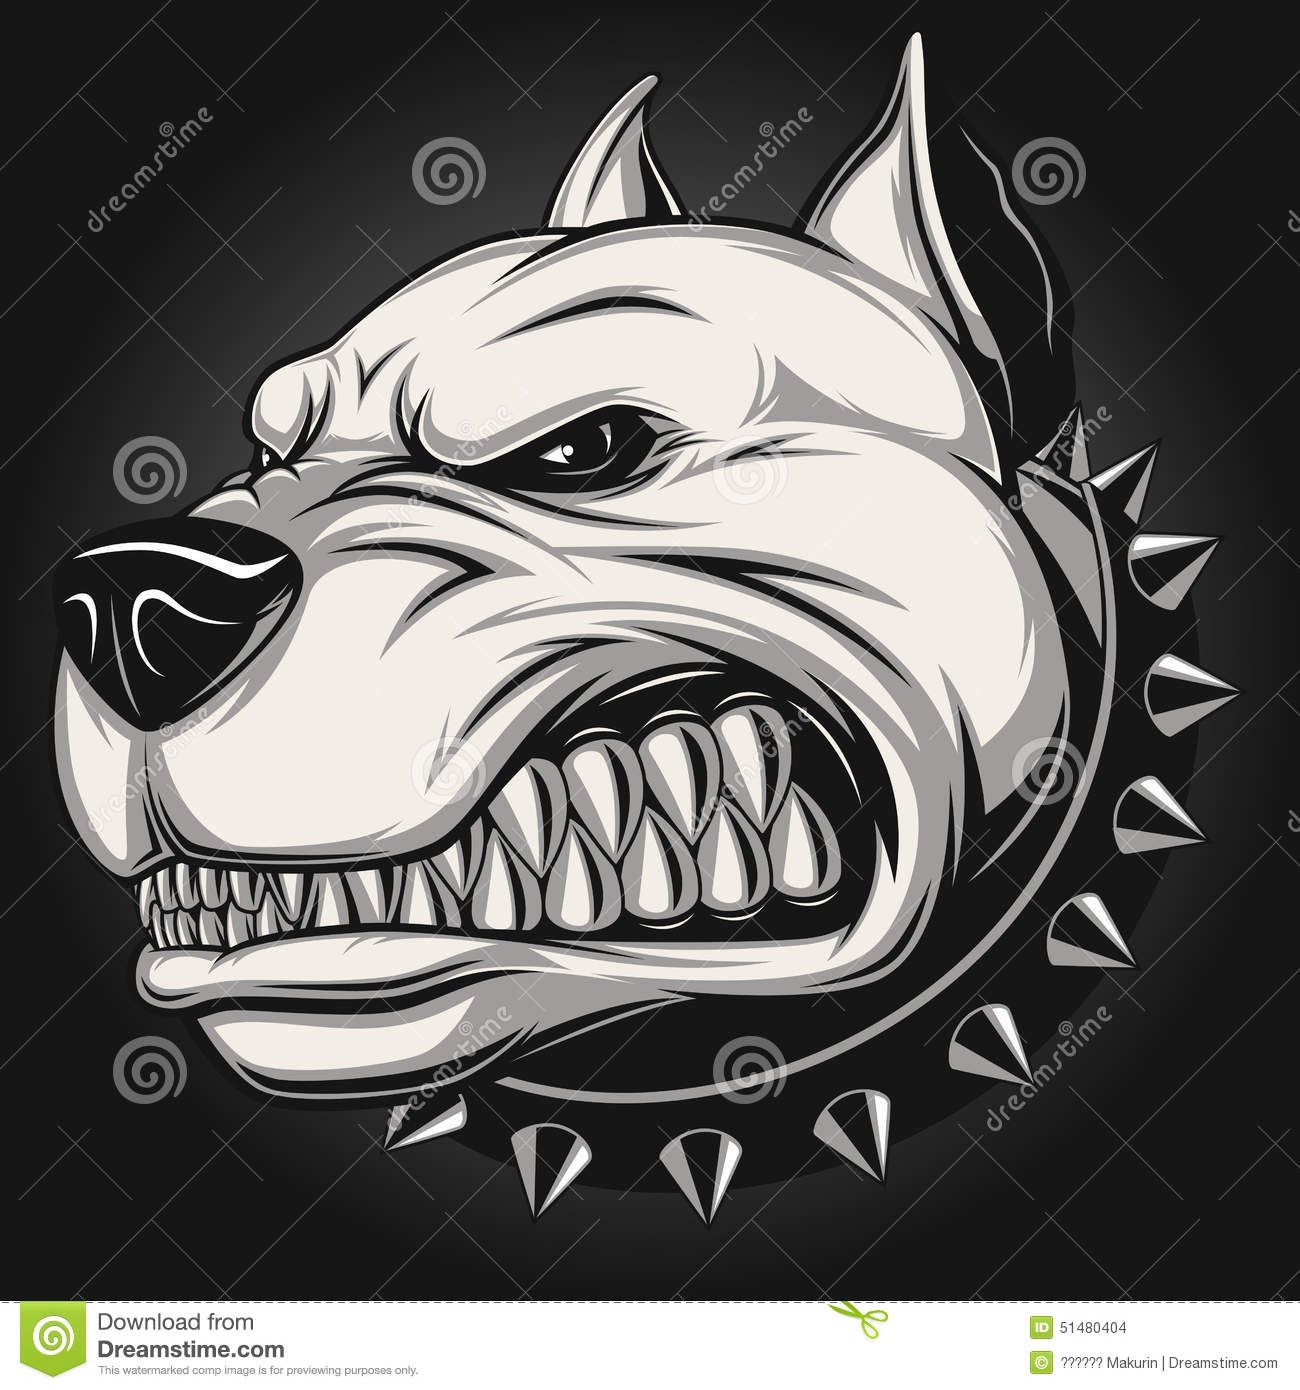 Angry Dog Download From Over 67 Million High Quality Stock